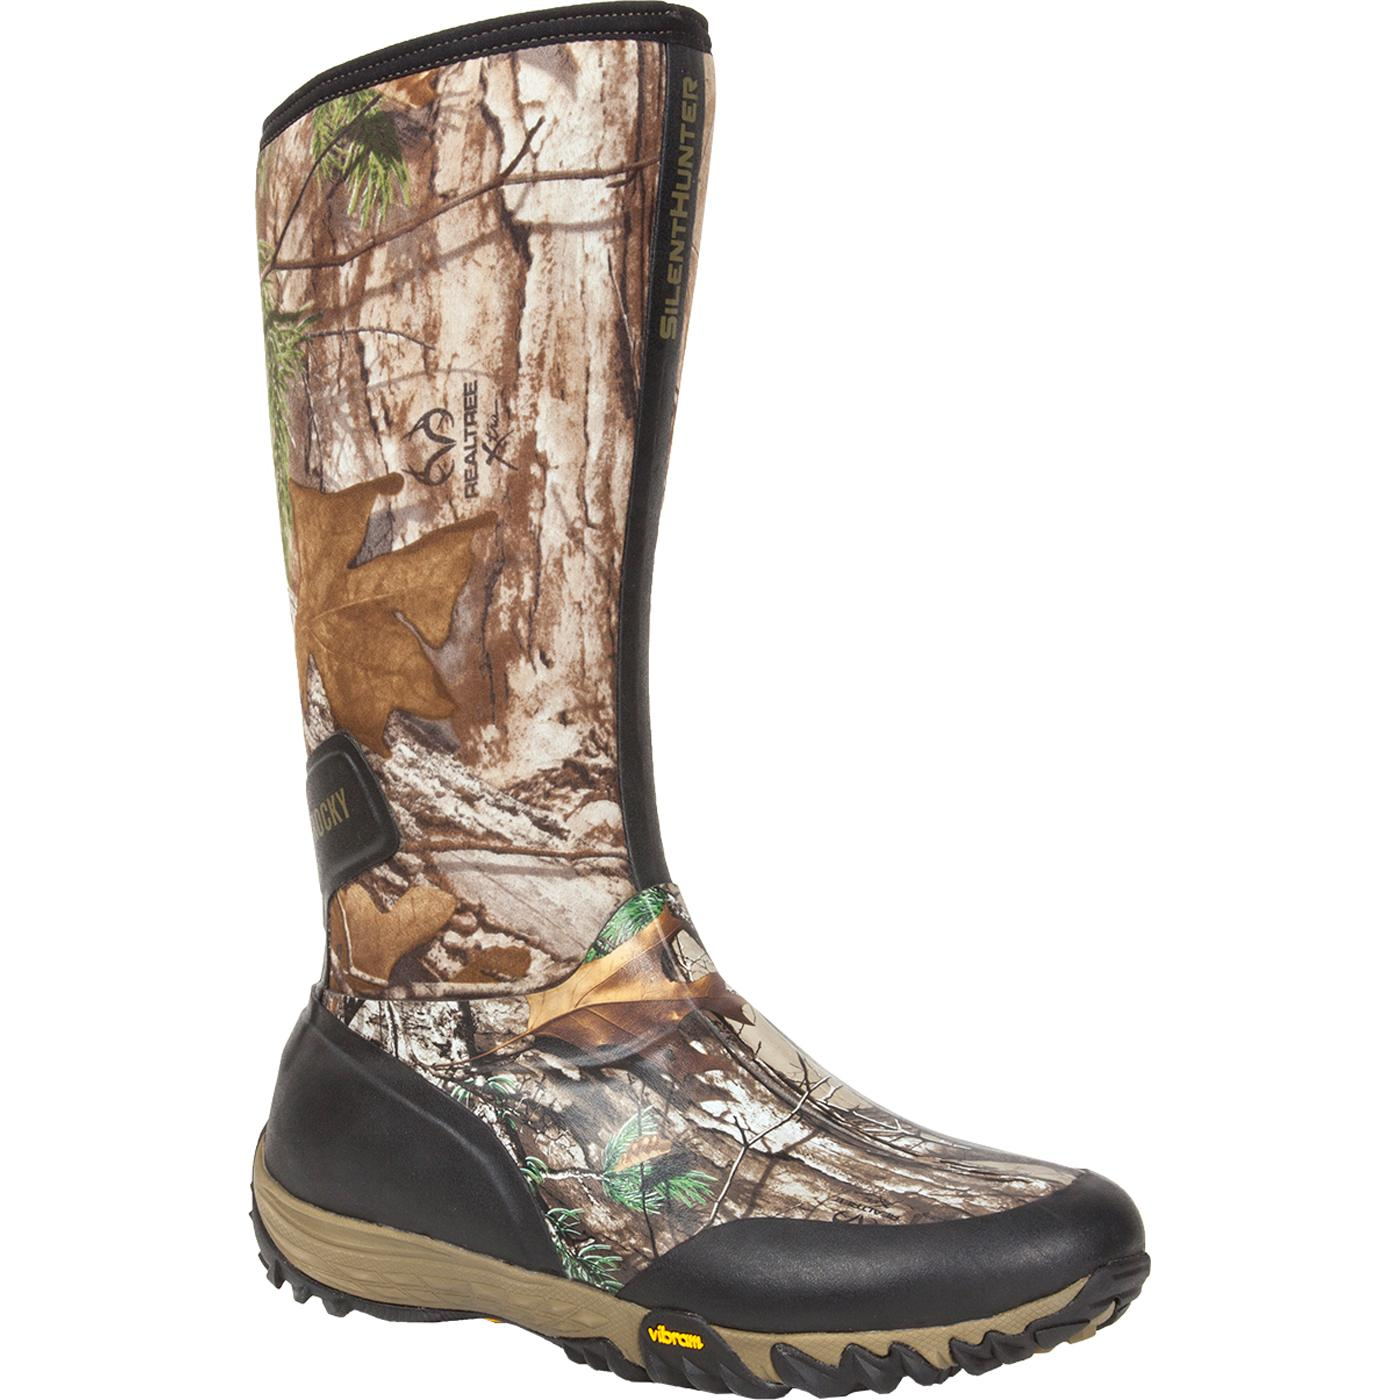 Rocky SilentHunter Waterproof 600G Insulated Rubber Outdoor Boot, , large